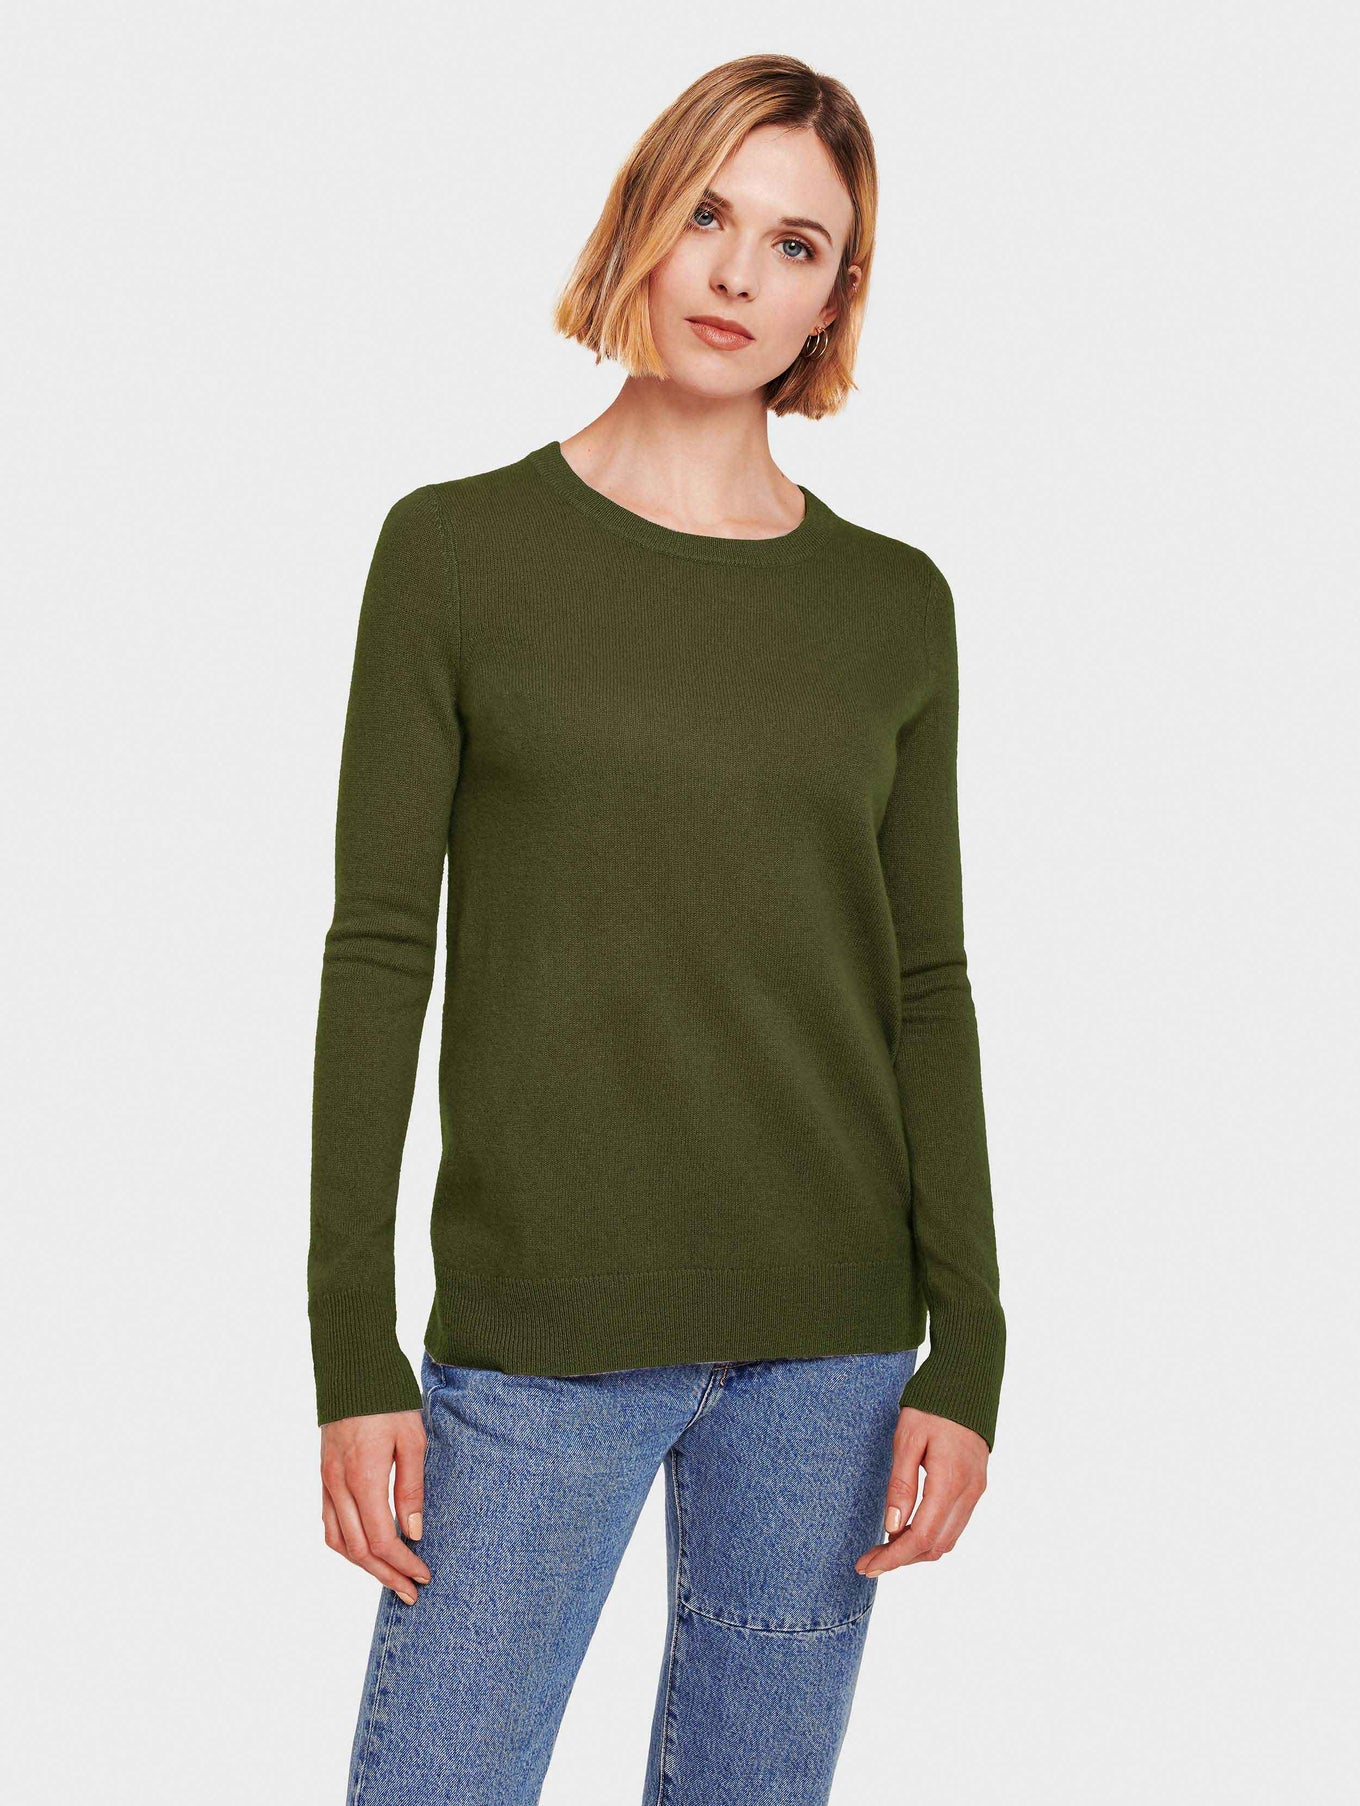 Essential Cashmere Crewneck - Olive Heather - Image 1